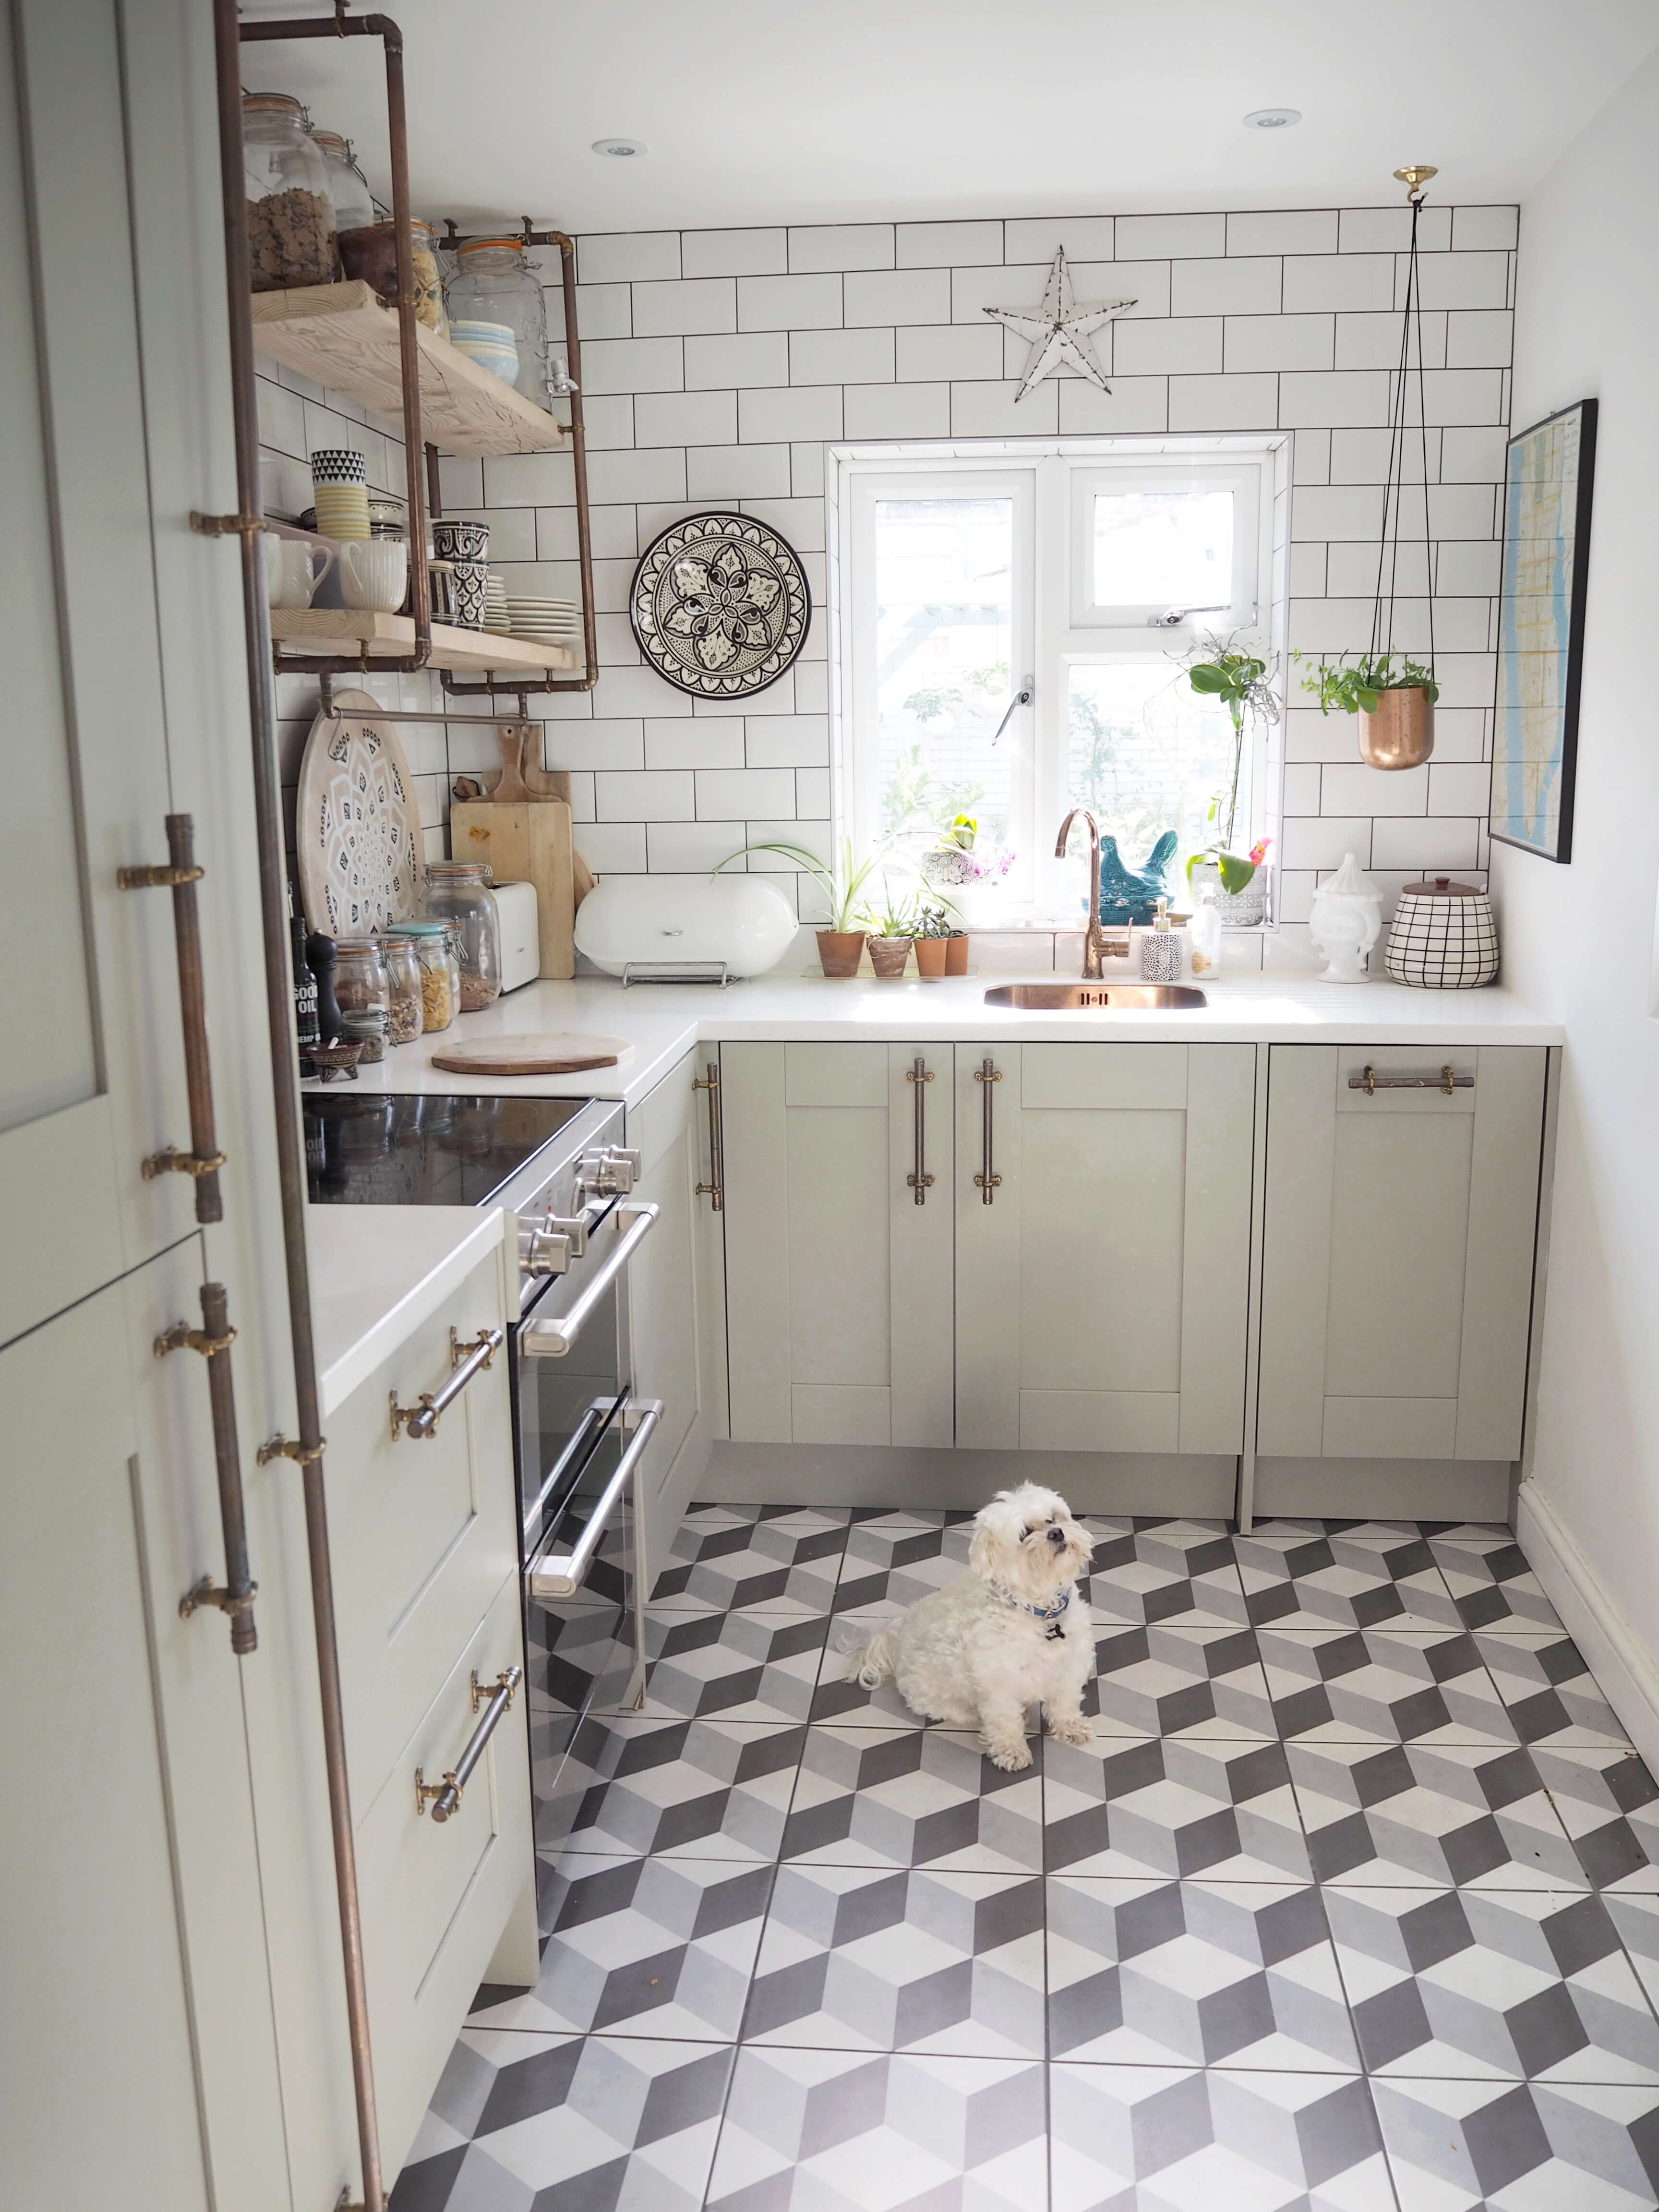 Expert advice to make your small kitchen look amazing no matter what it's size including design tips and storage ideas - Interior Stylist Maxine Brady